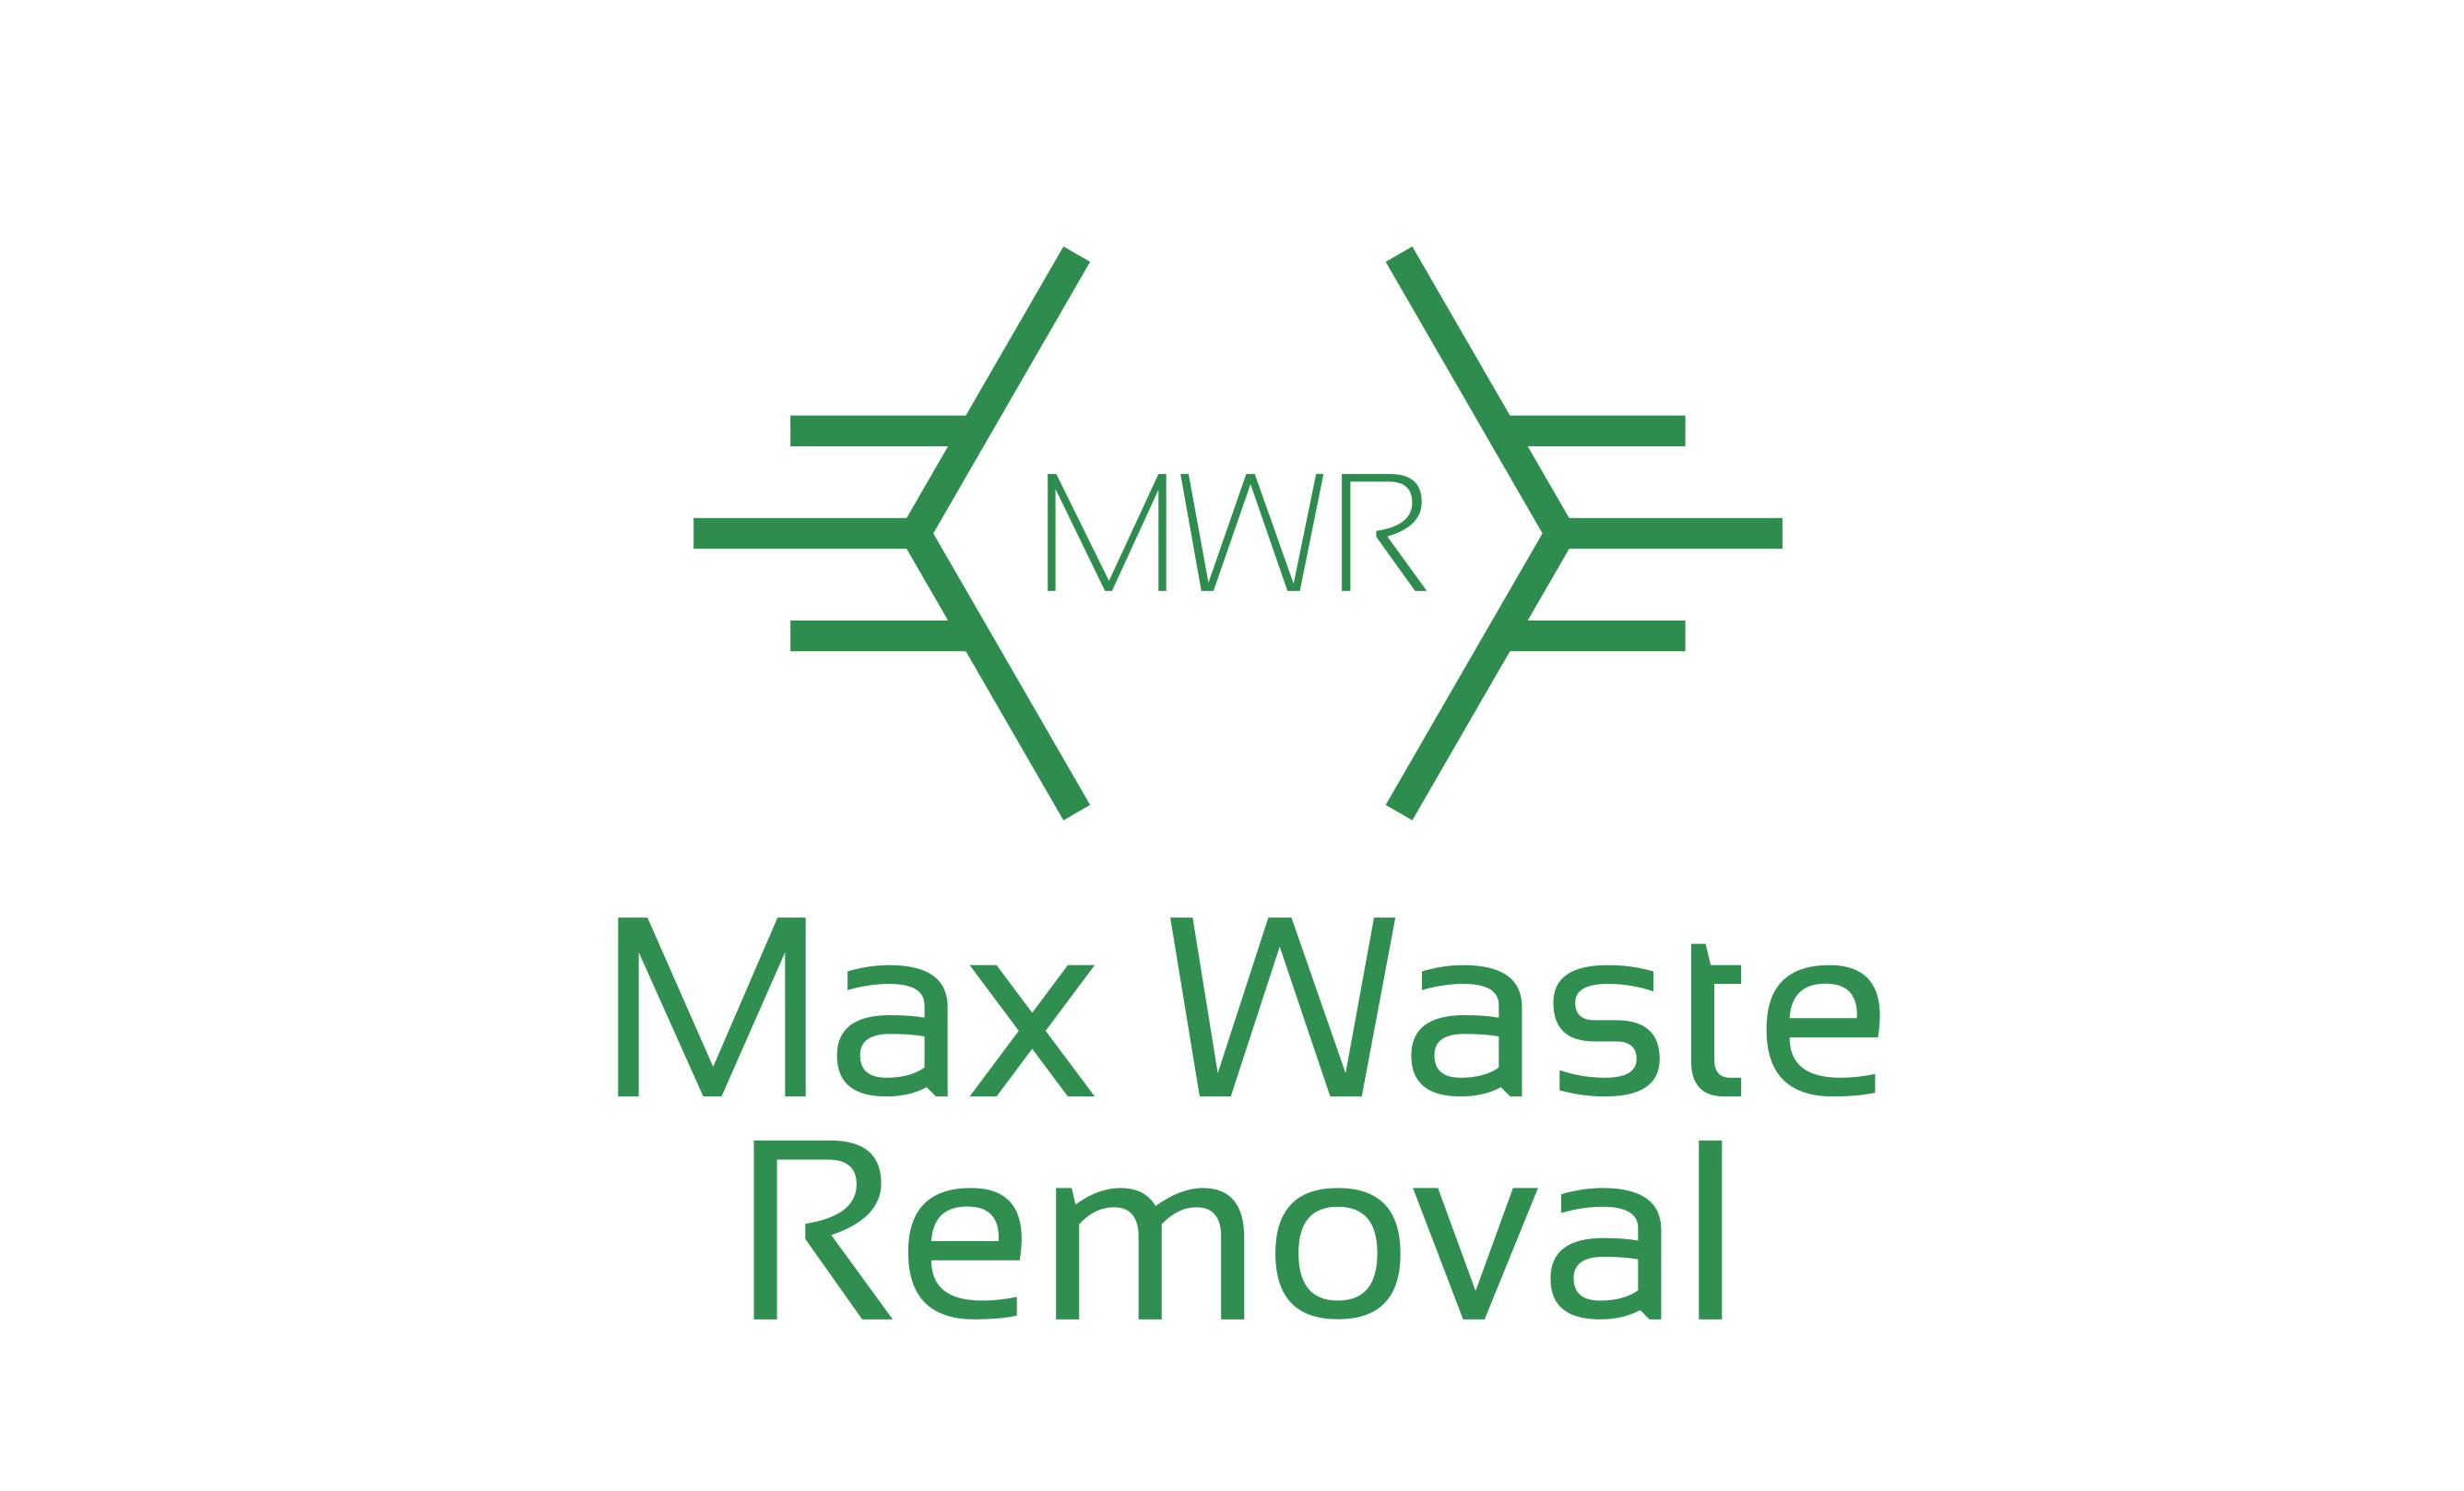 Max Waste Removal Logo